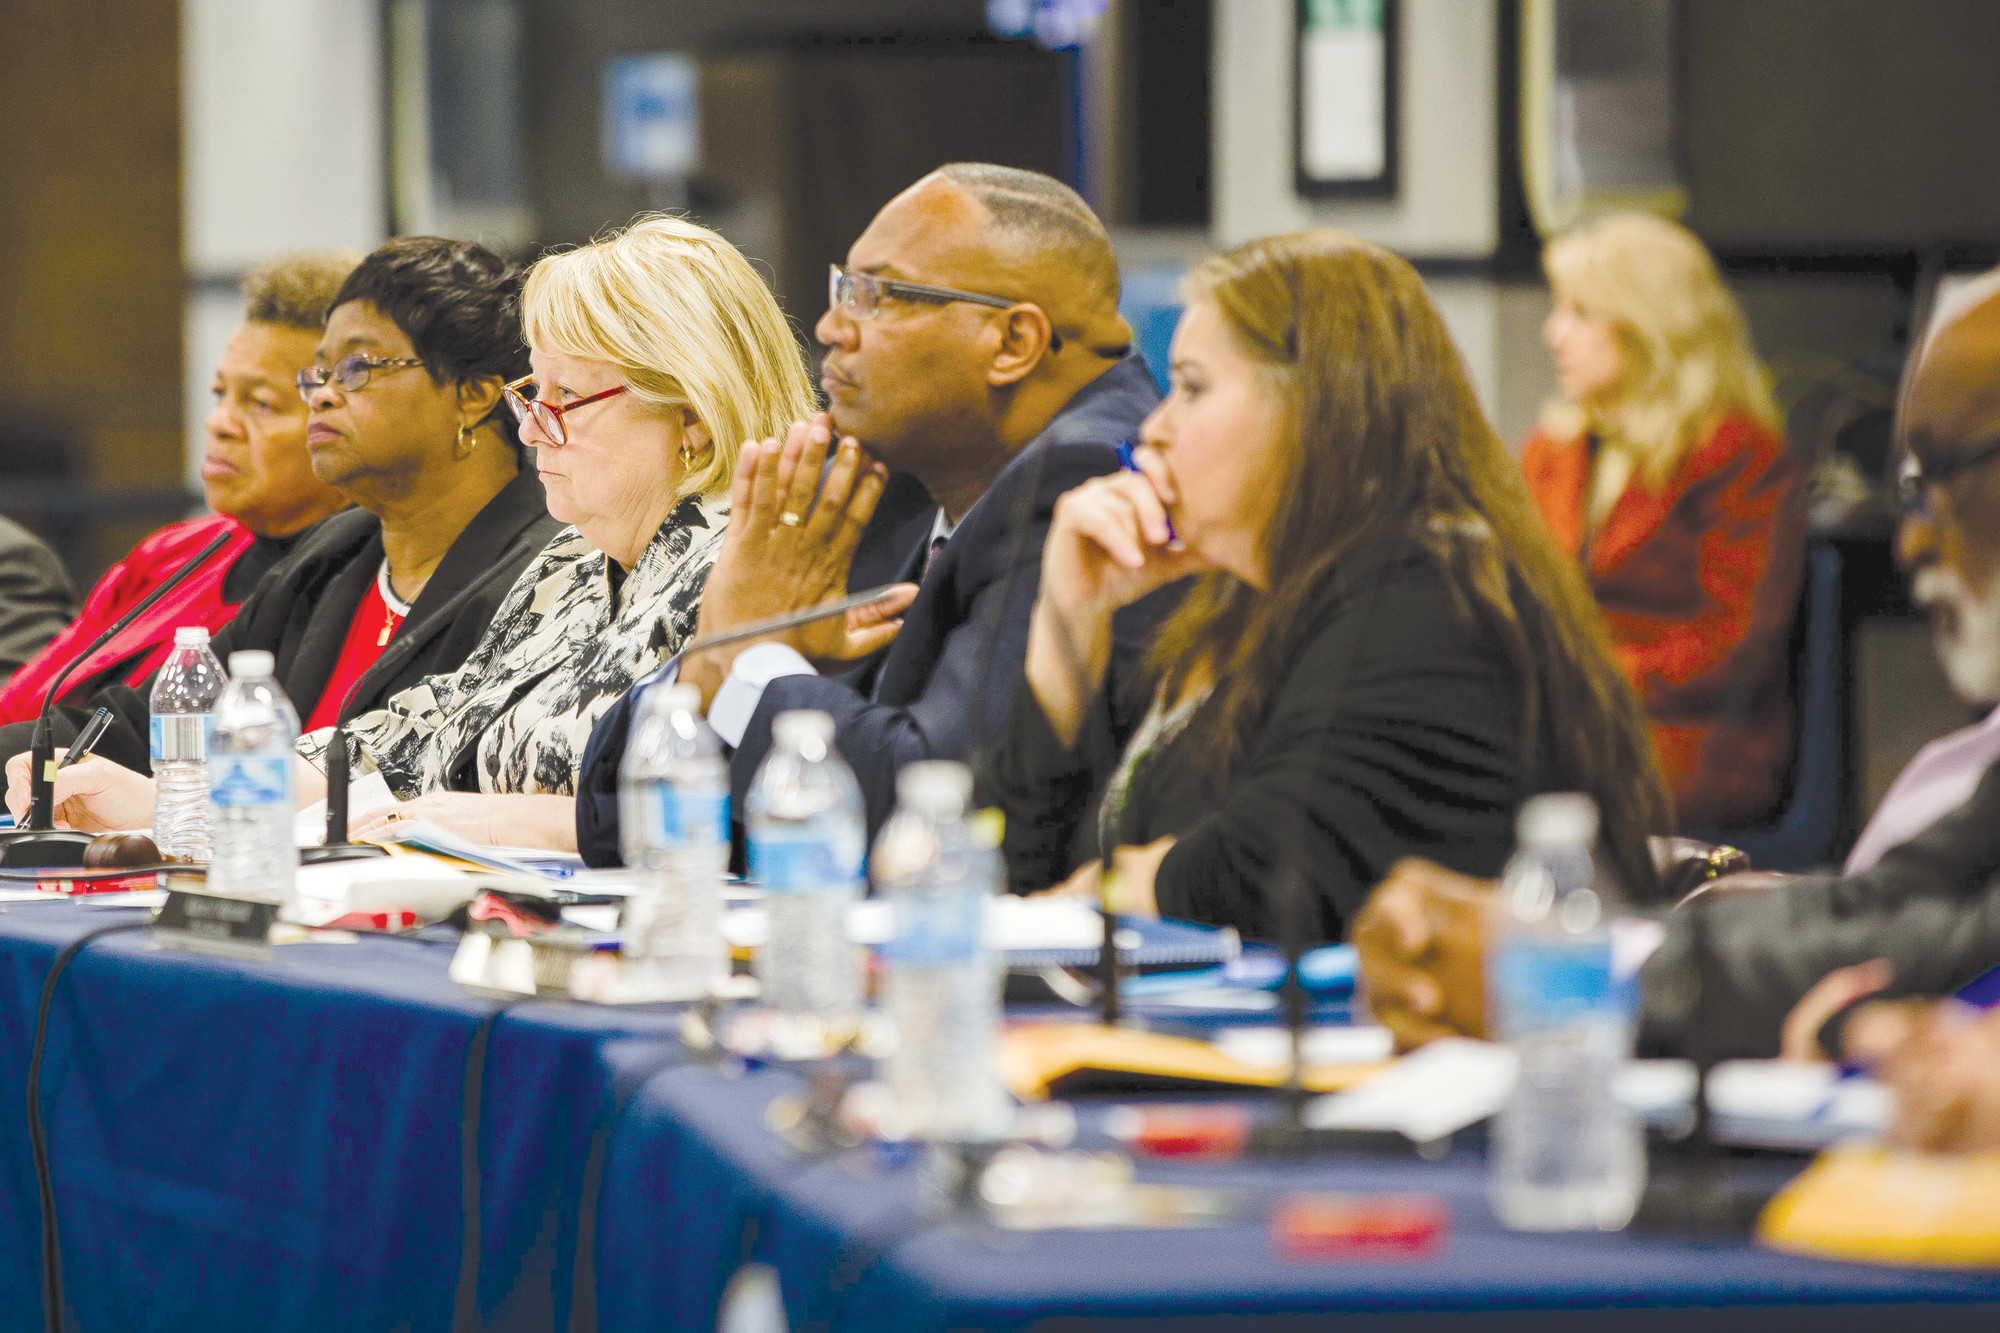 Sumter School District's Board of Trustees and Interim Superintendent Debbie Hamm, center, listen Monday night during public participation at the board meeting at Sumter High School's Commons Area.